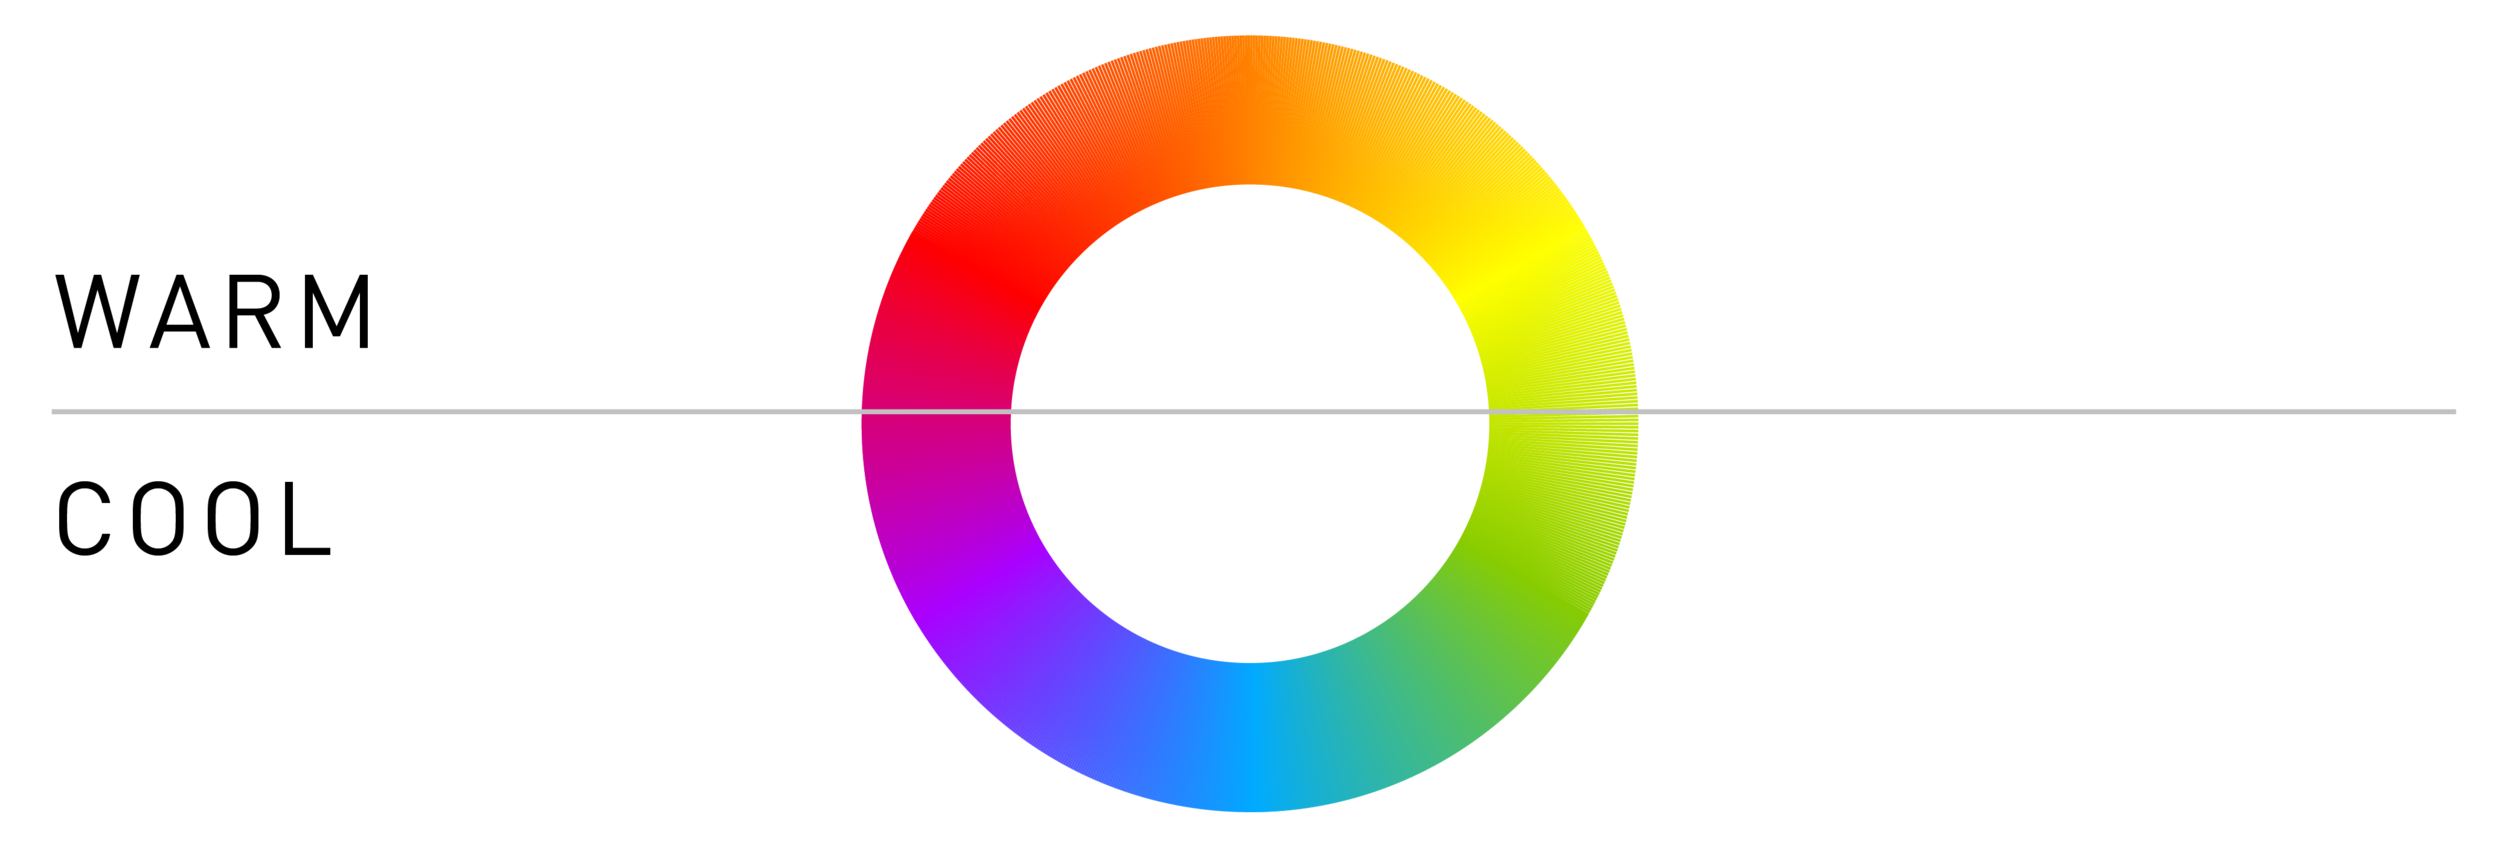 ColorTheoryBlogPost-04.png